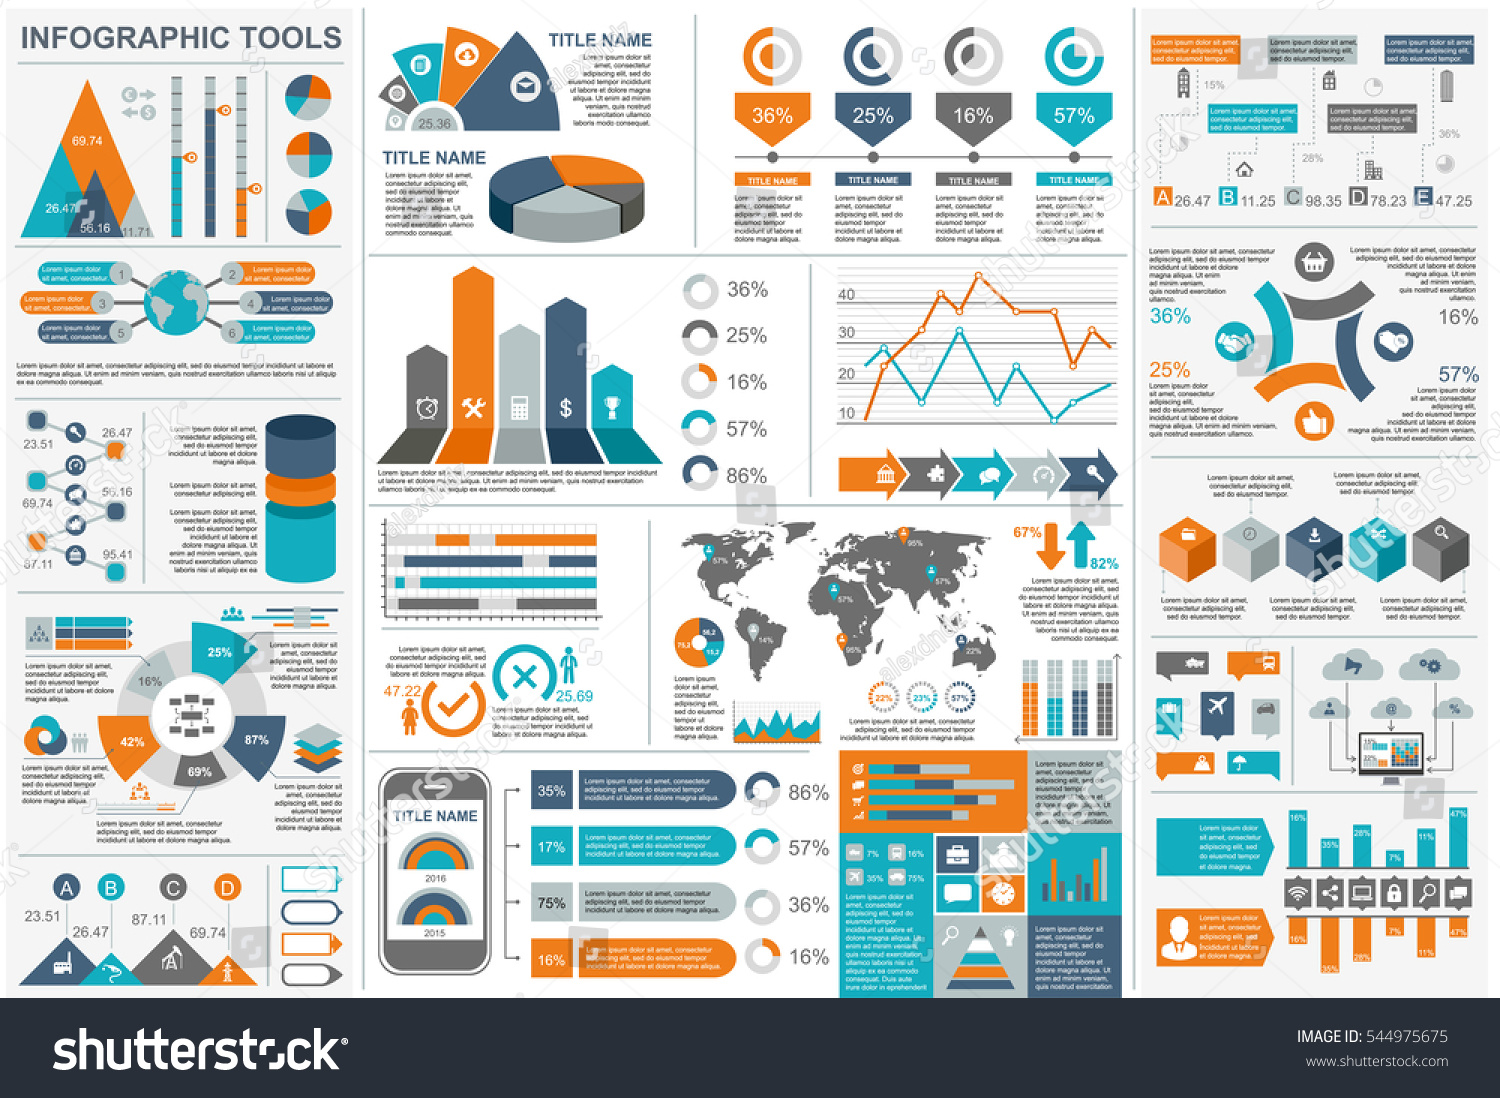 Top Infographic Elements Data Visualization Vector Design Stock Vector  GF74